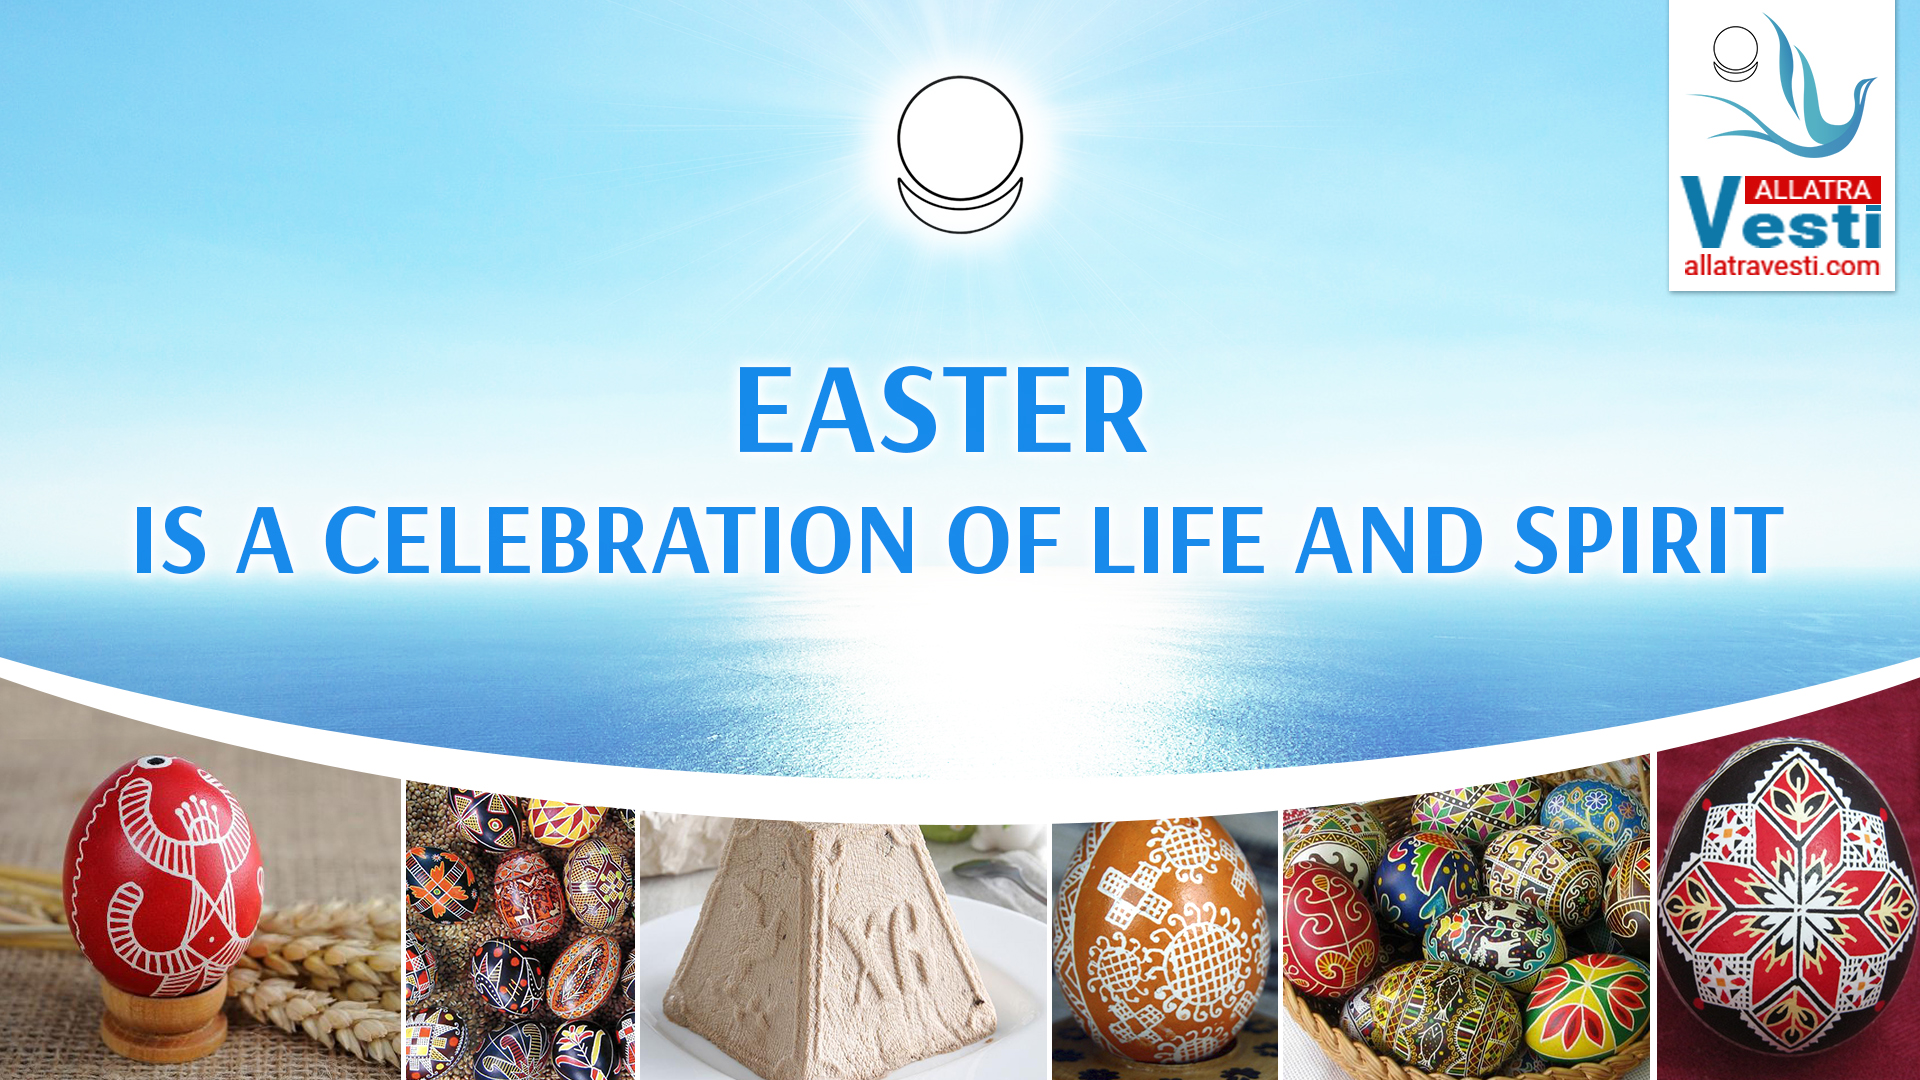 EASTER IS A CELEBRATION  <mark><b>OF</b></mark>  LIFE AND SPIRIT